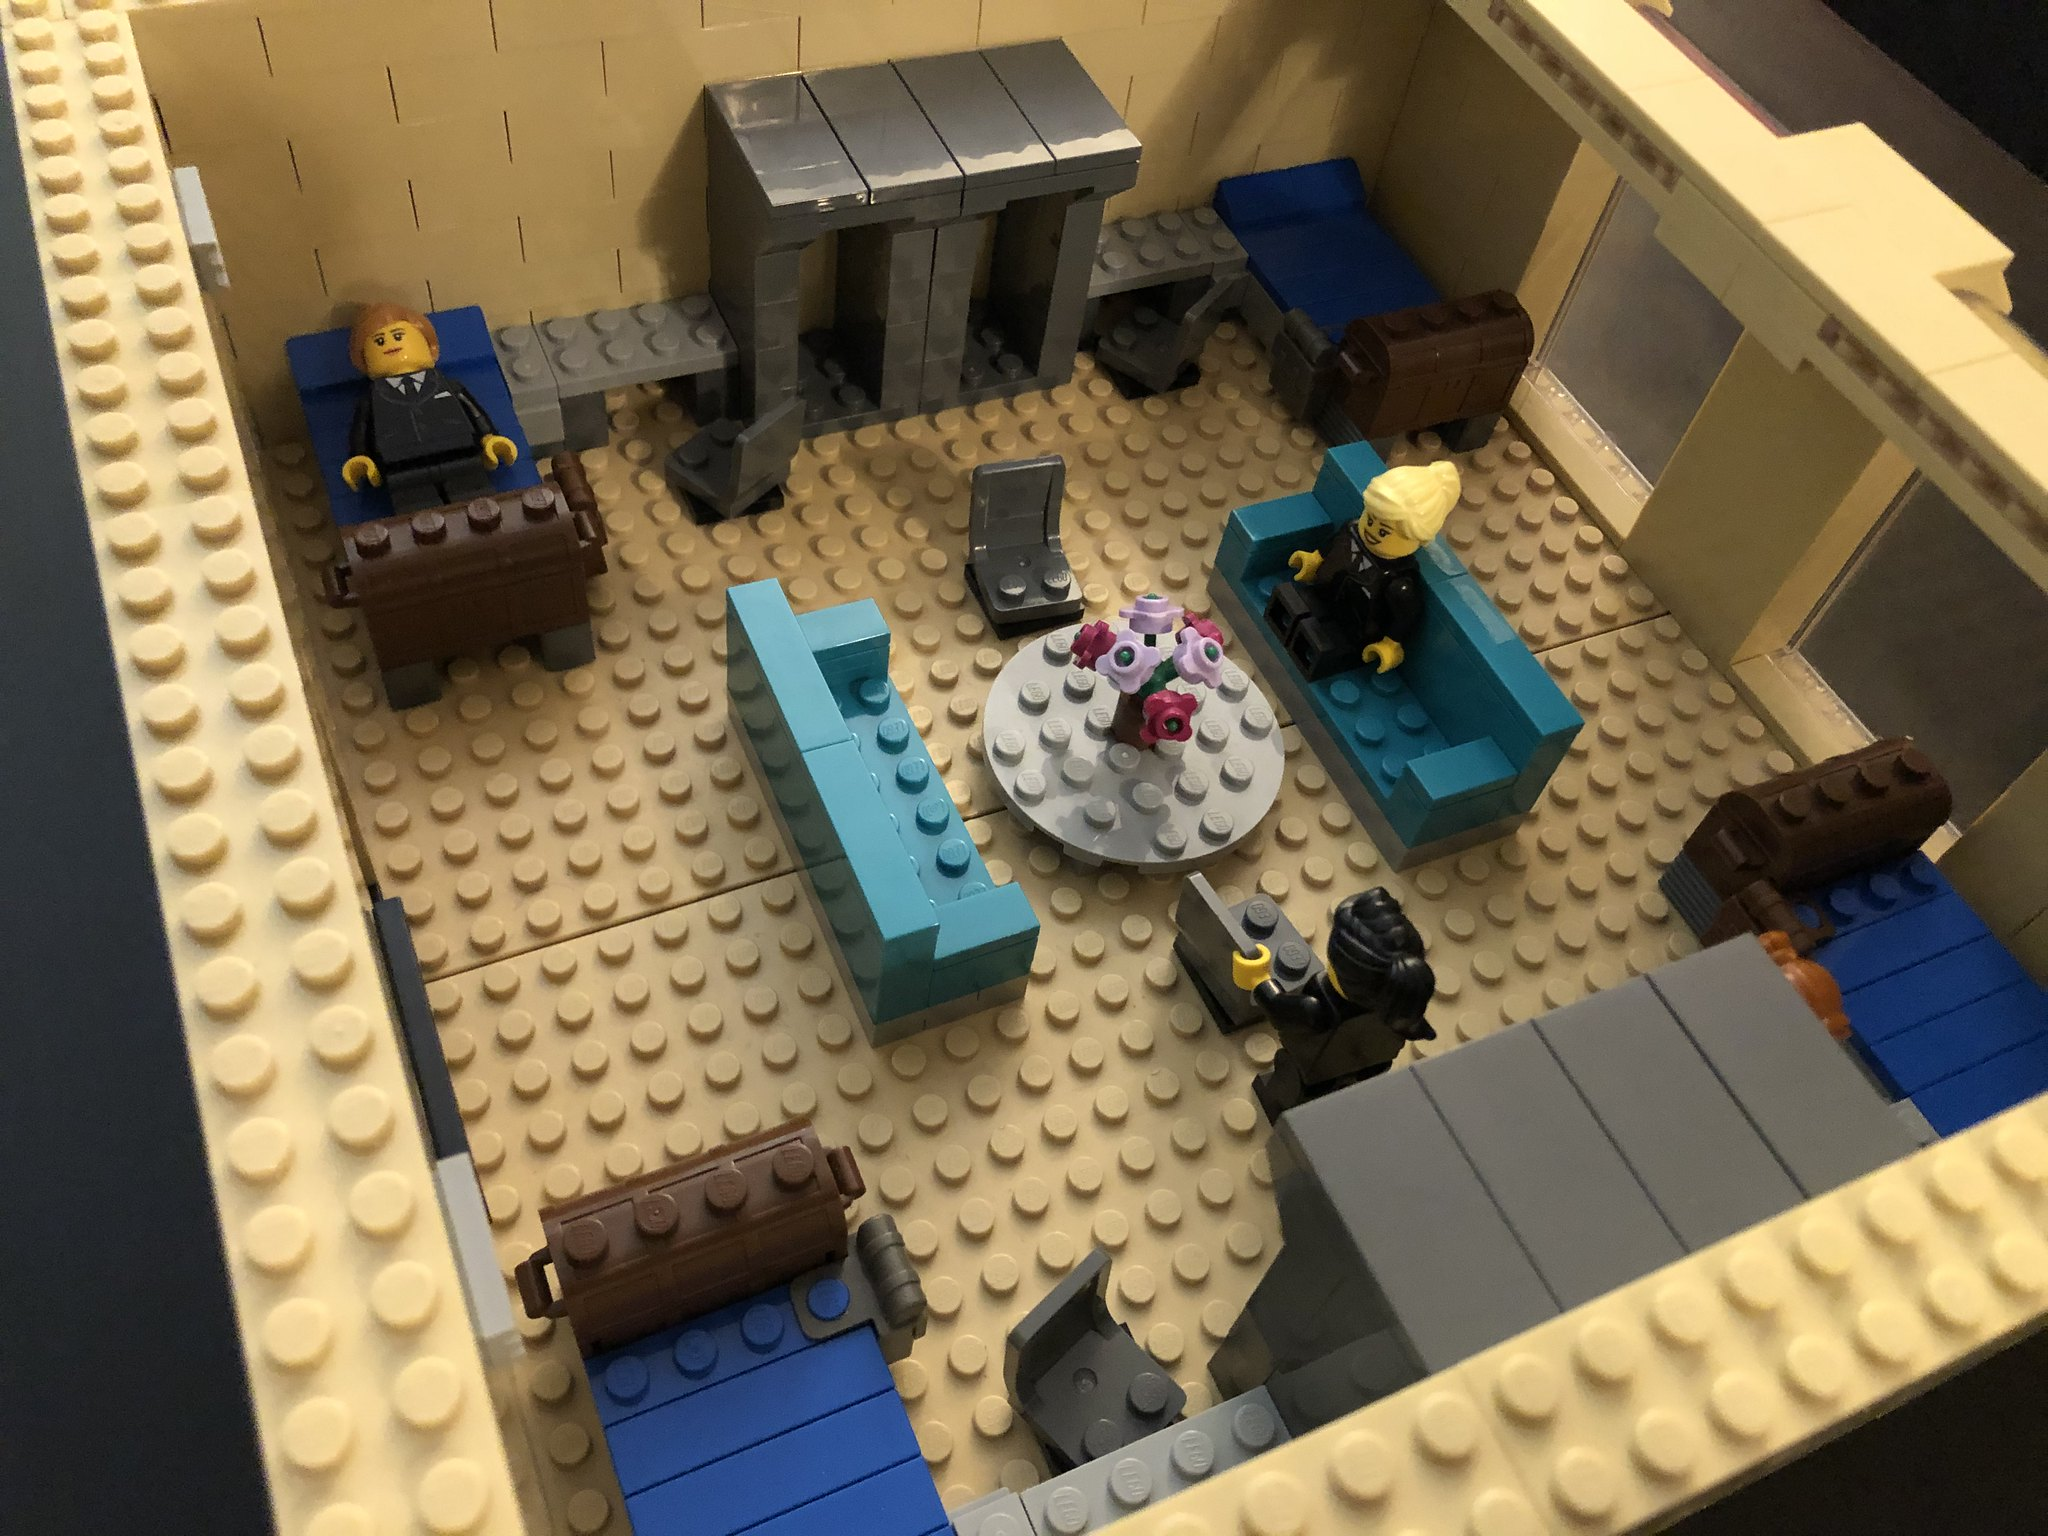 Dorm Room top facing napping minifigure